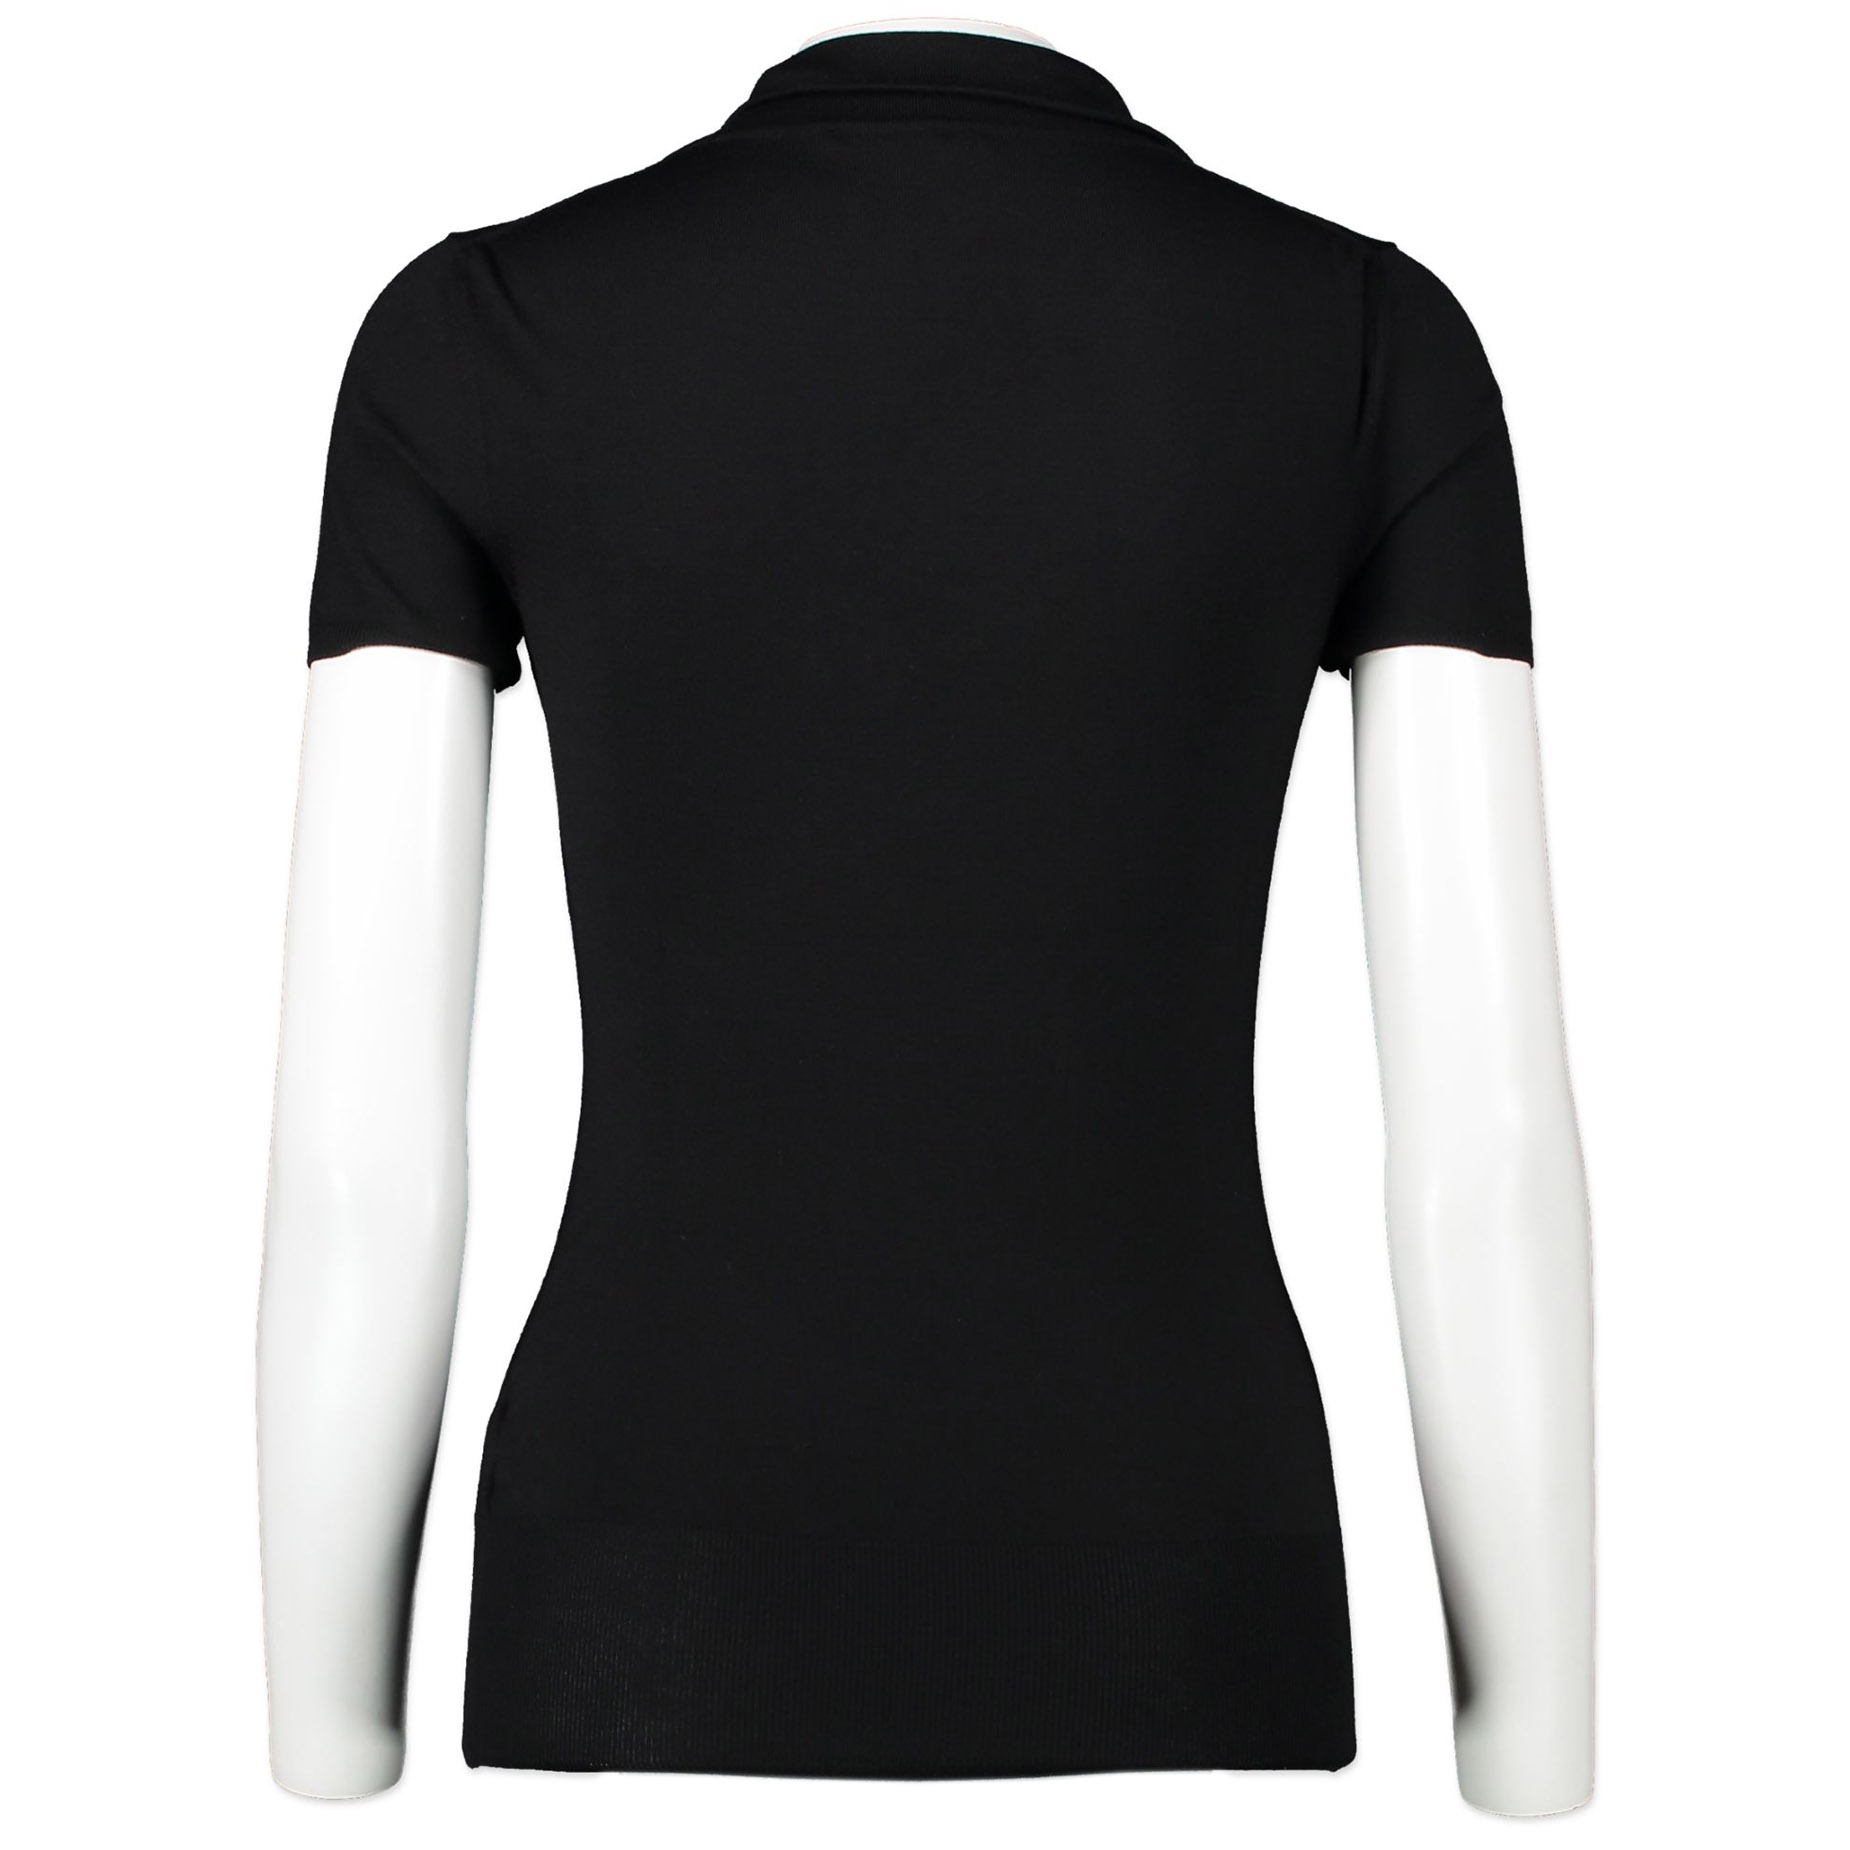 f91604413232 Buy this authentic second-hand vintage Gucci Black Bow Top at online  webshop LabelLOV.